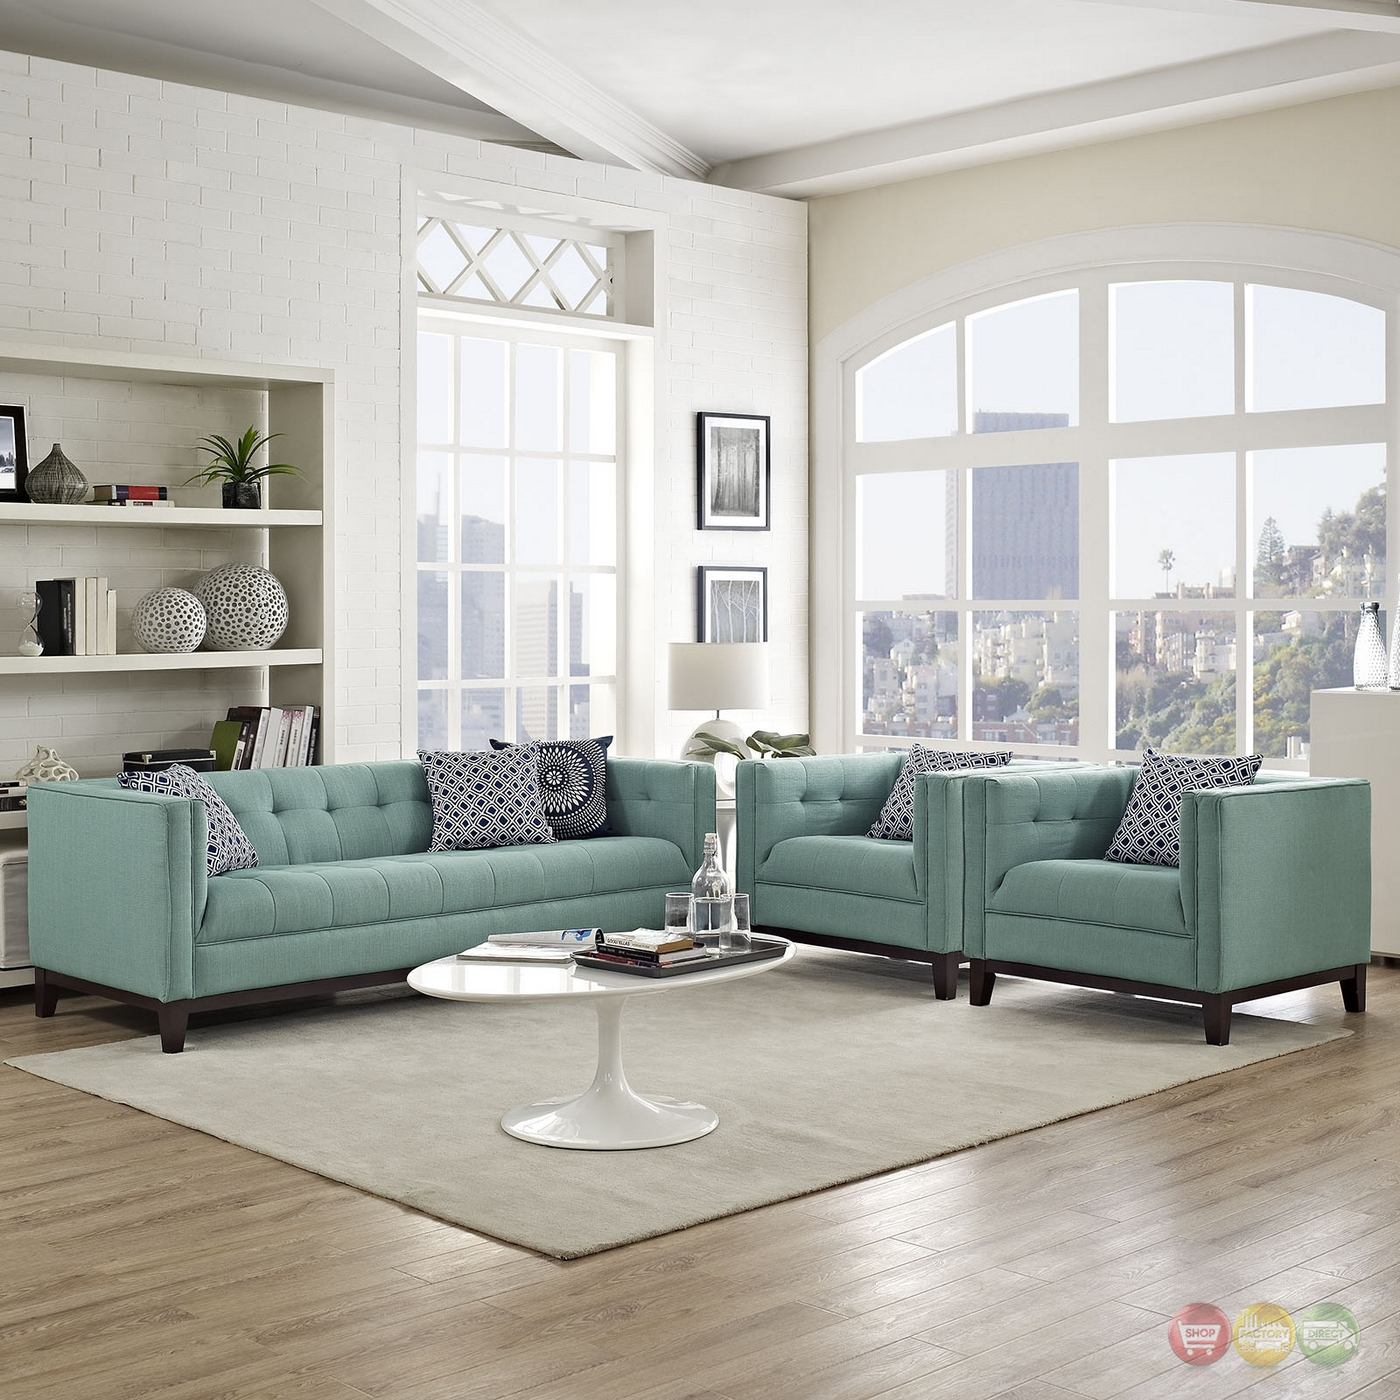 serve modern 3 pc upholstered sofa armchairs living room